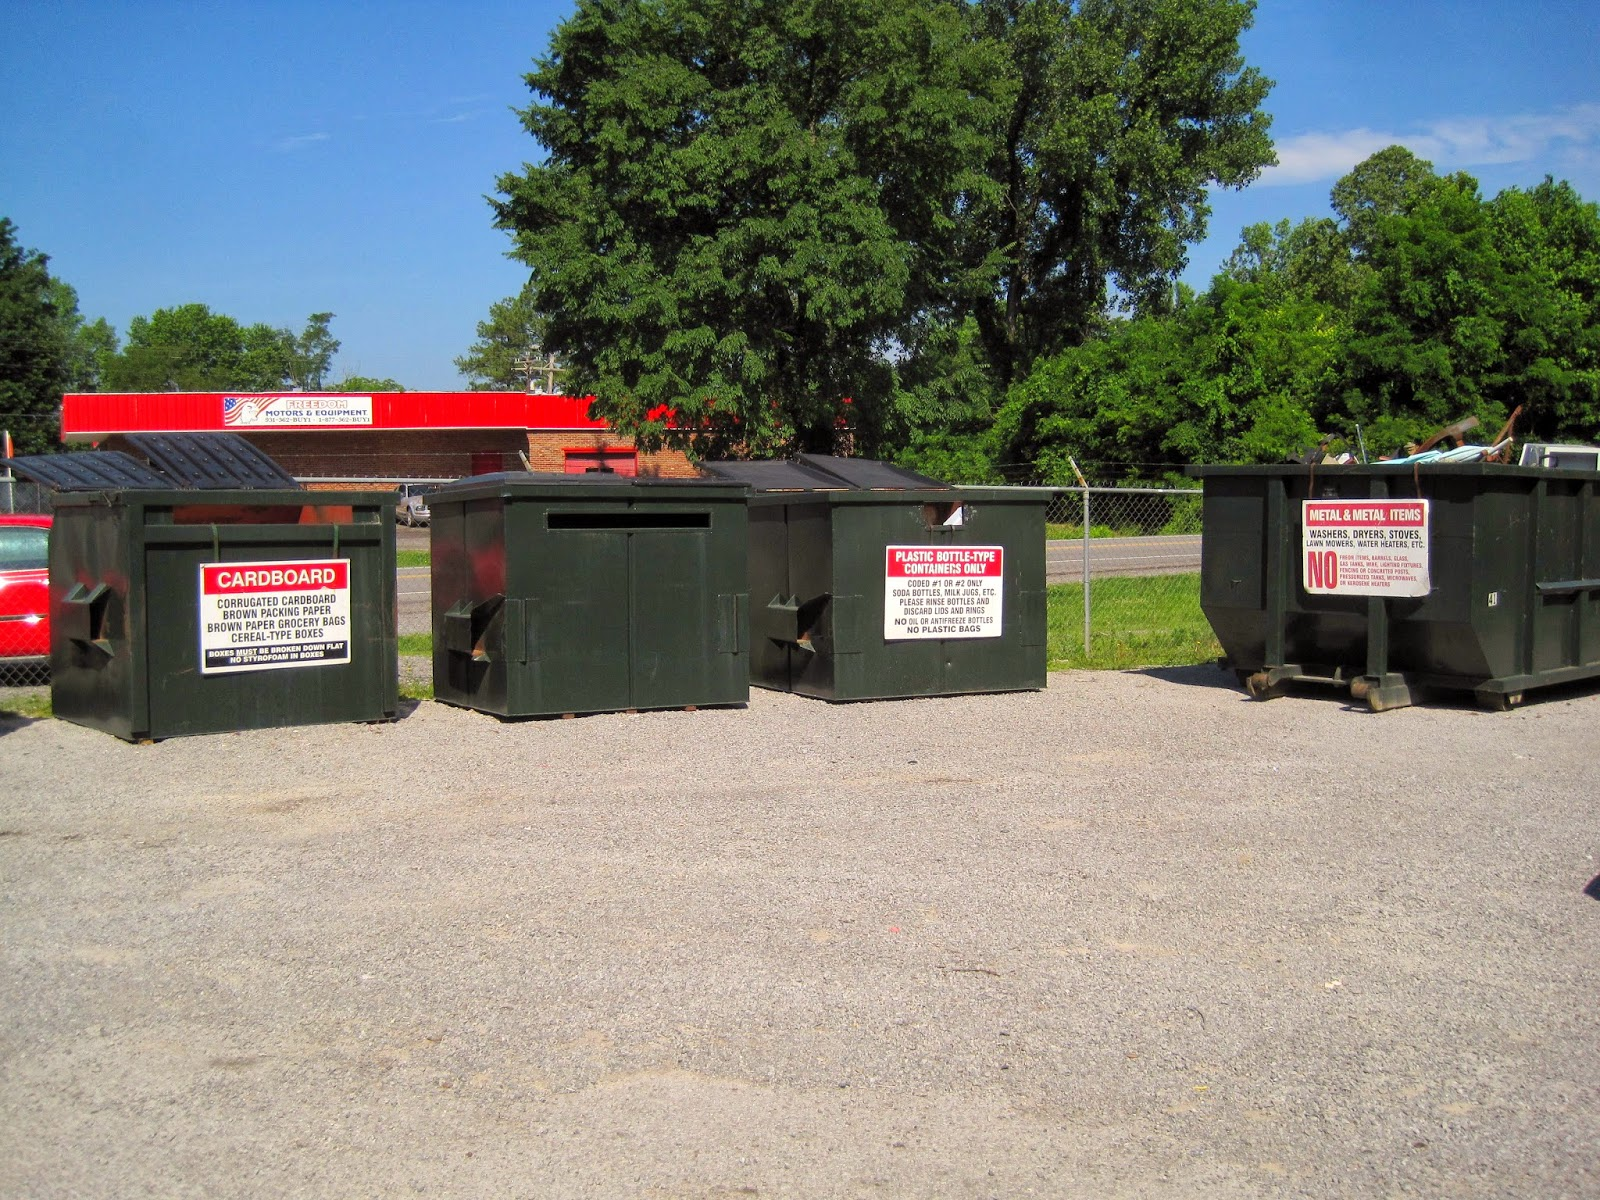 how to start a recycling center in my town